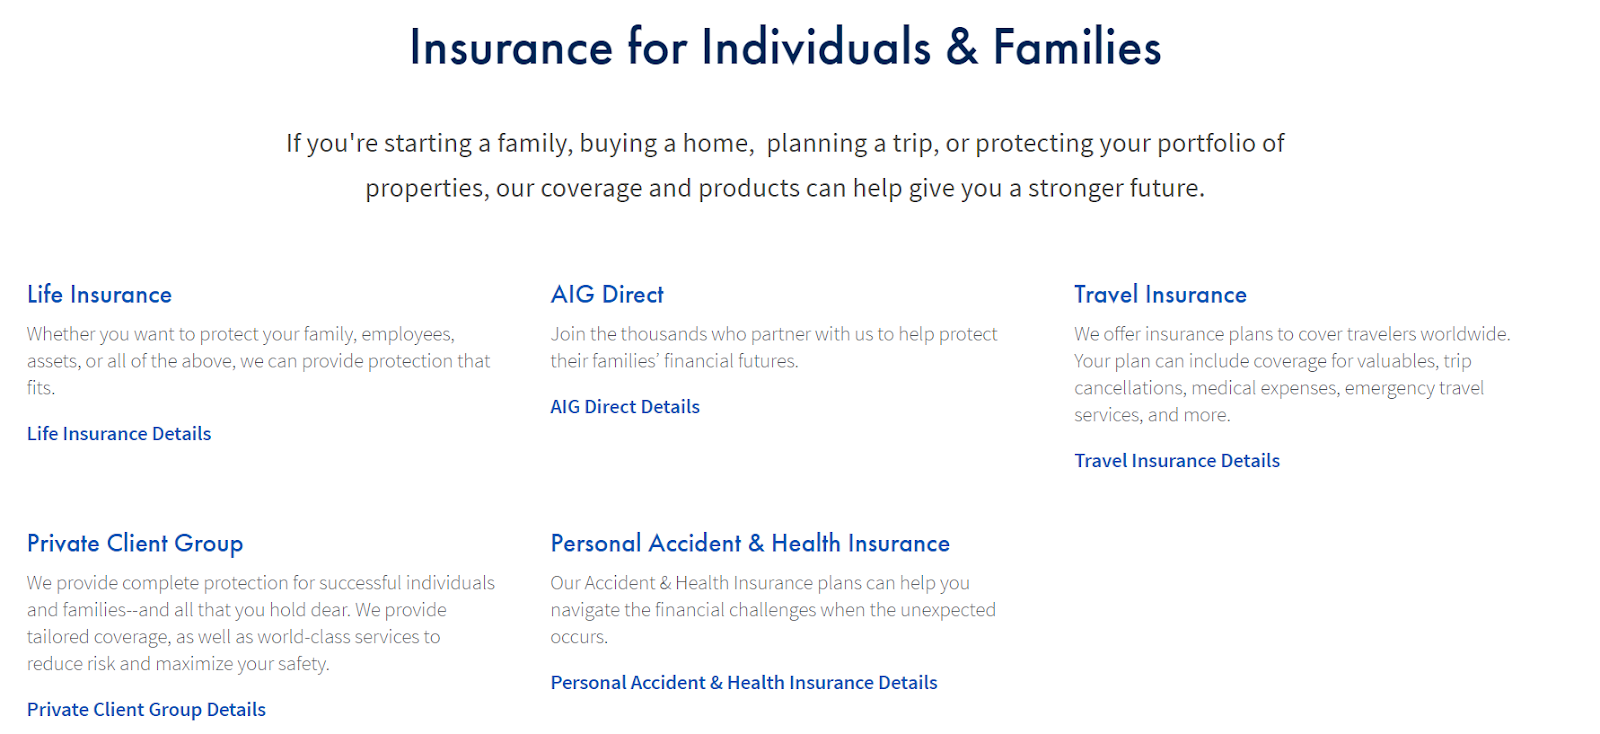 AIG Review: An Abundance of Life Insurance Options means there is something for everyone - Insurance Options